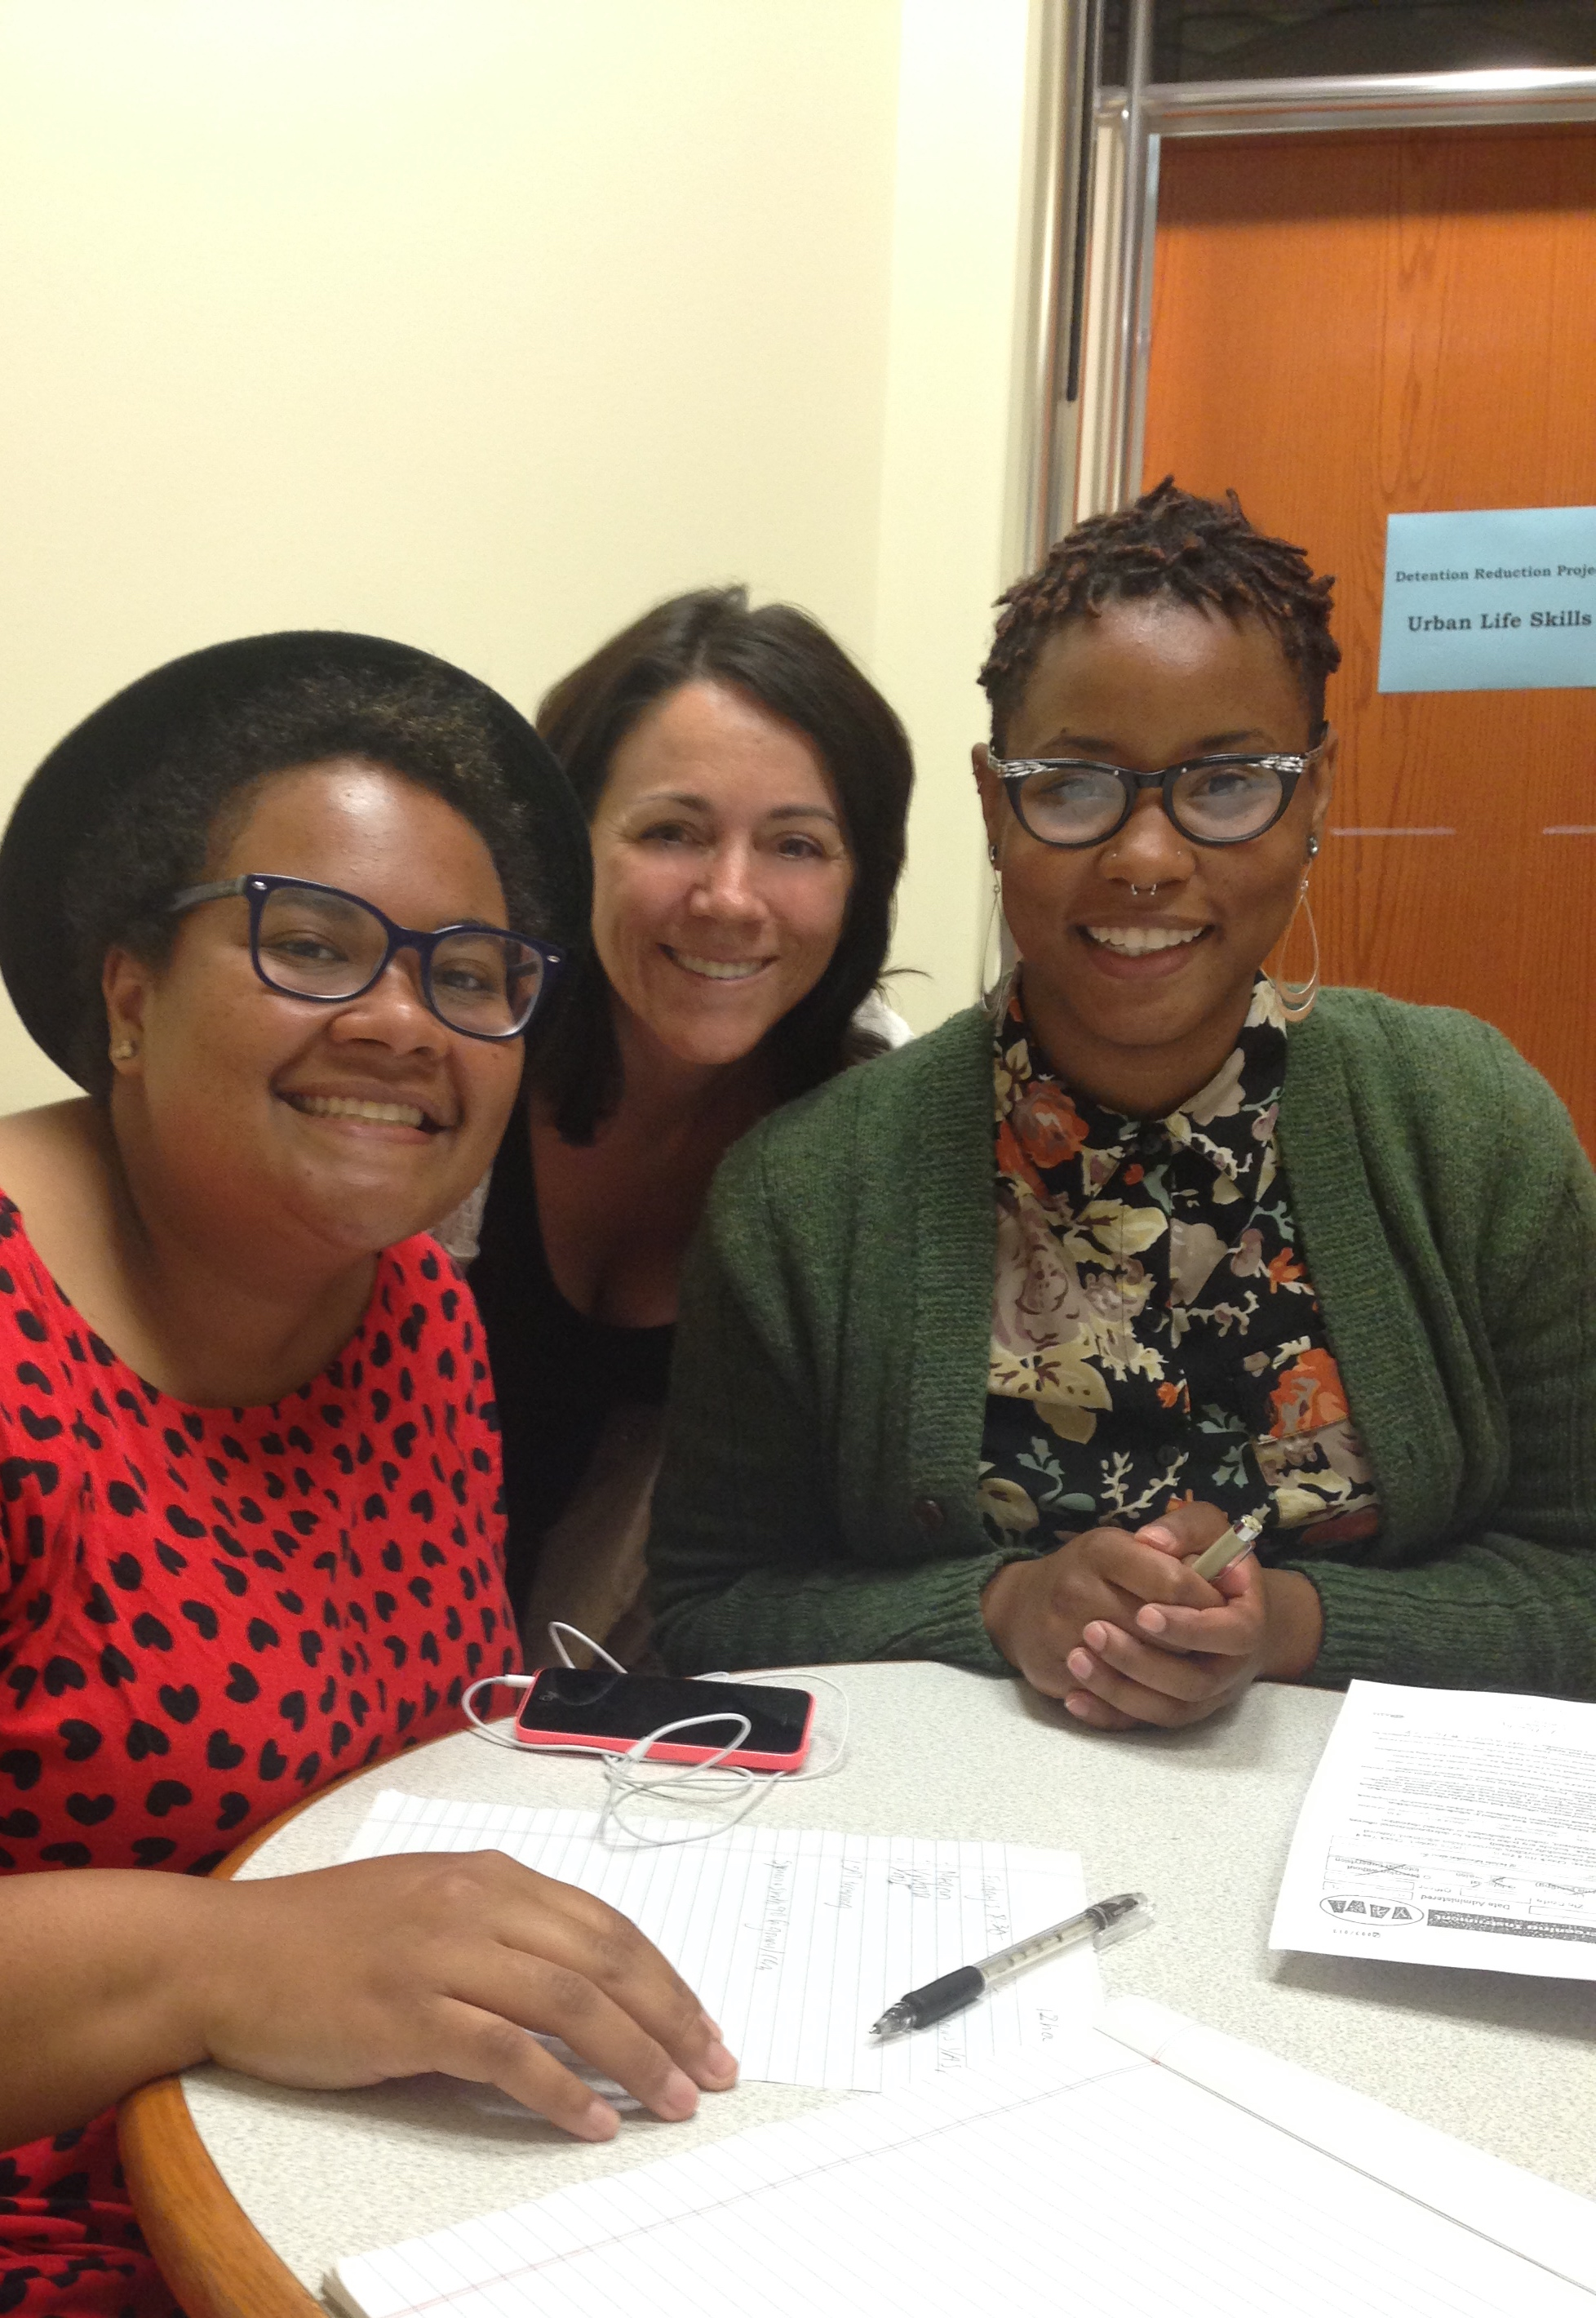 Healther Dalmage (center) with students Jaime Mayer (left) and Symone Simon (right).